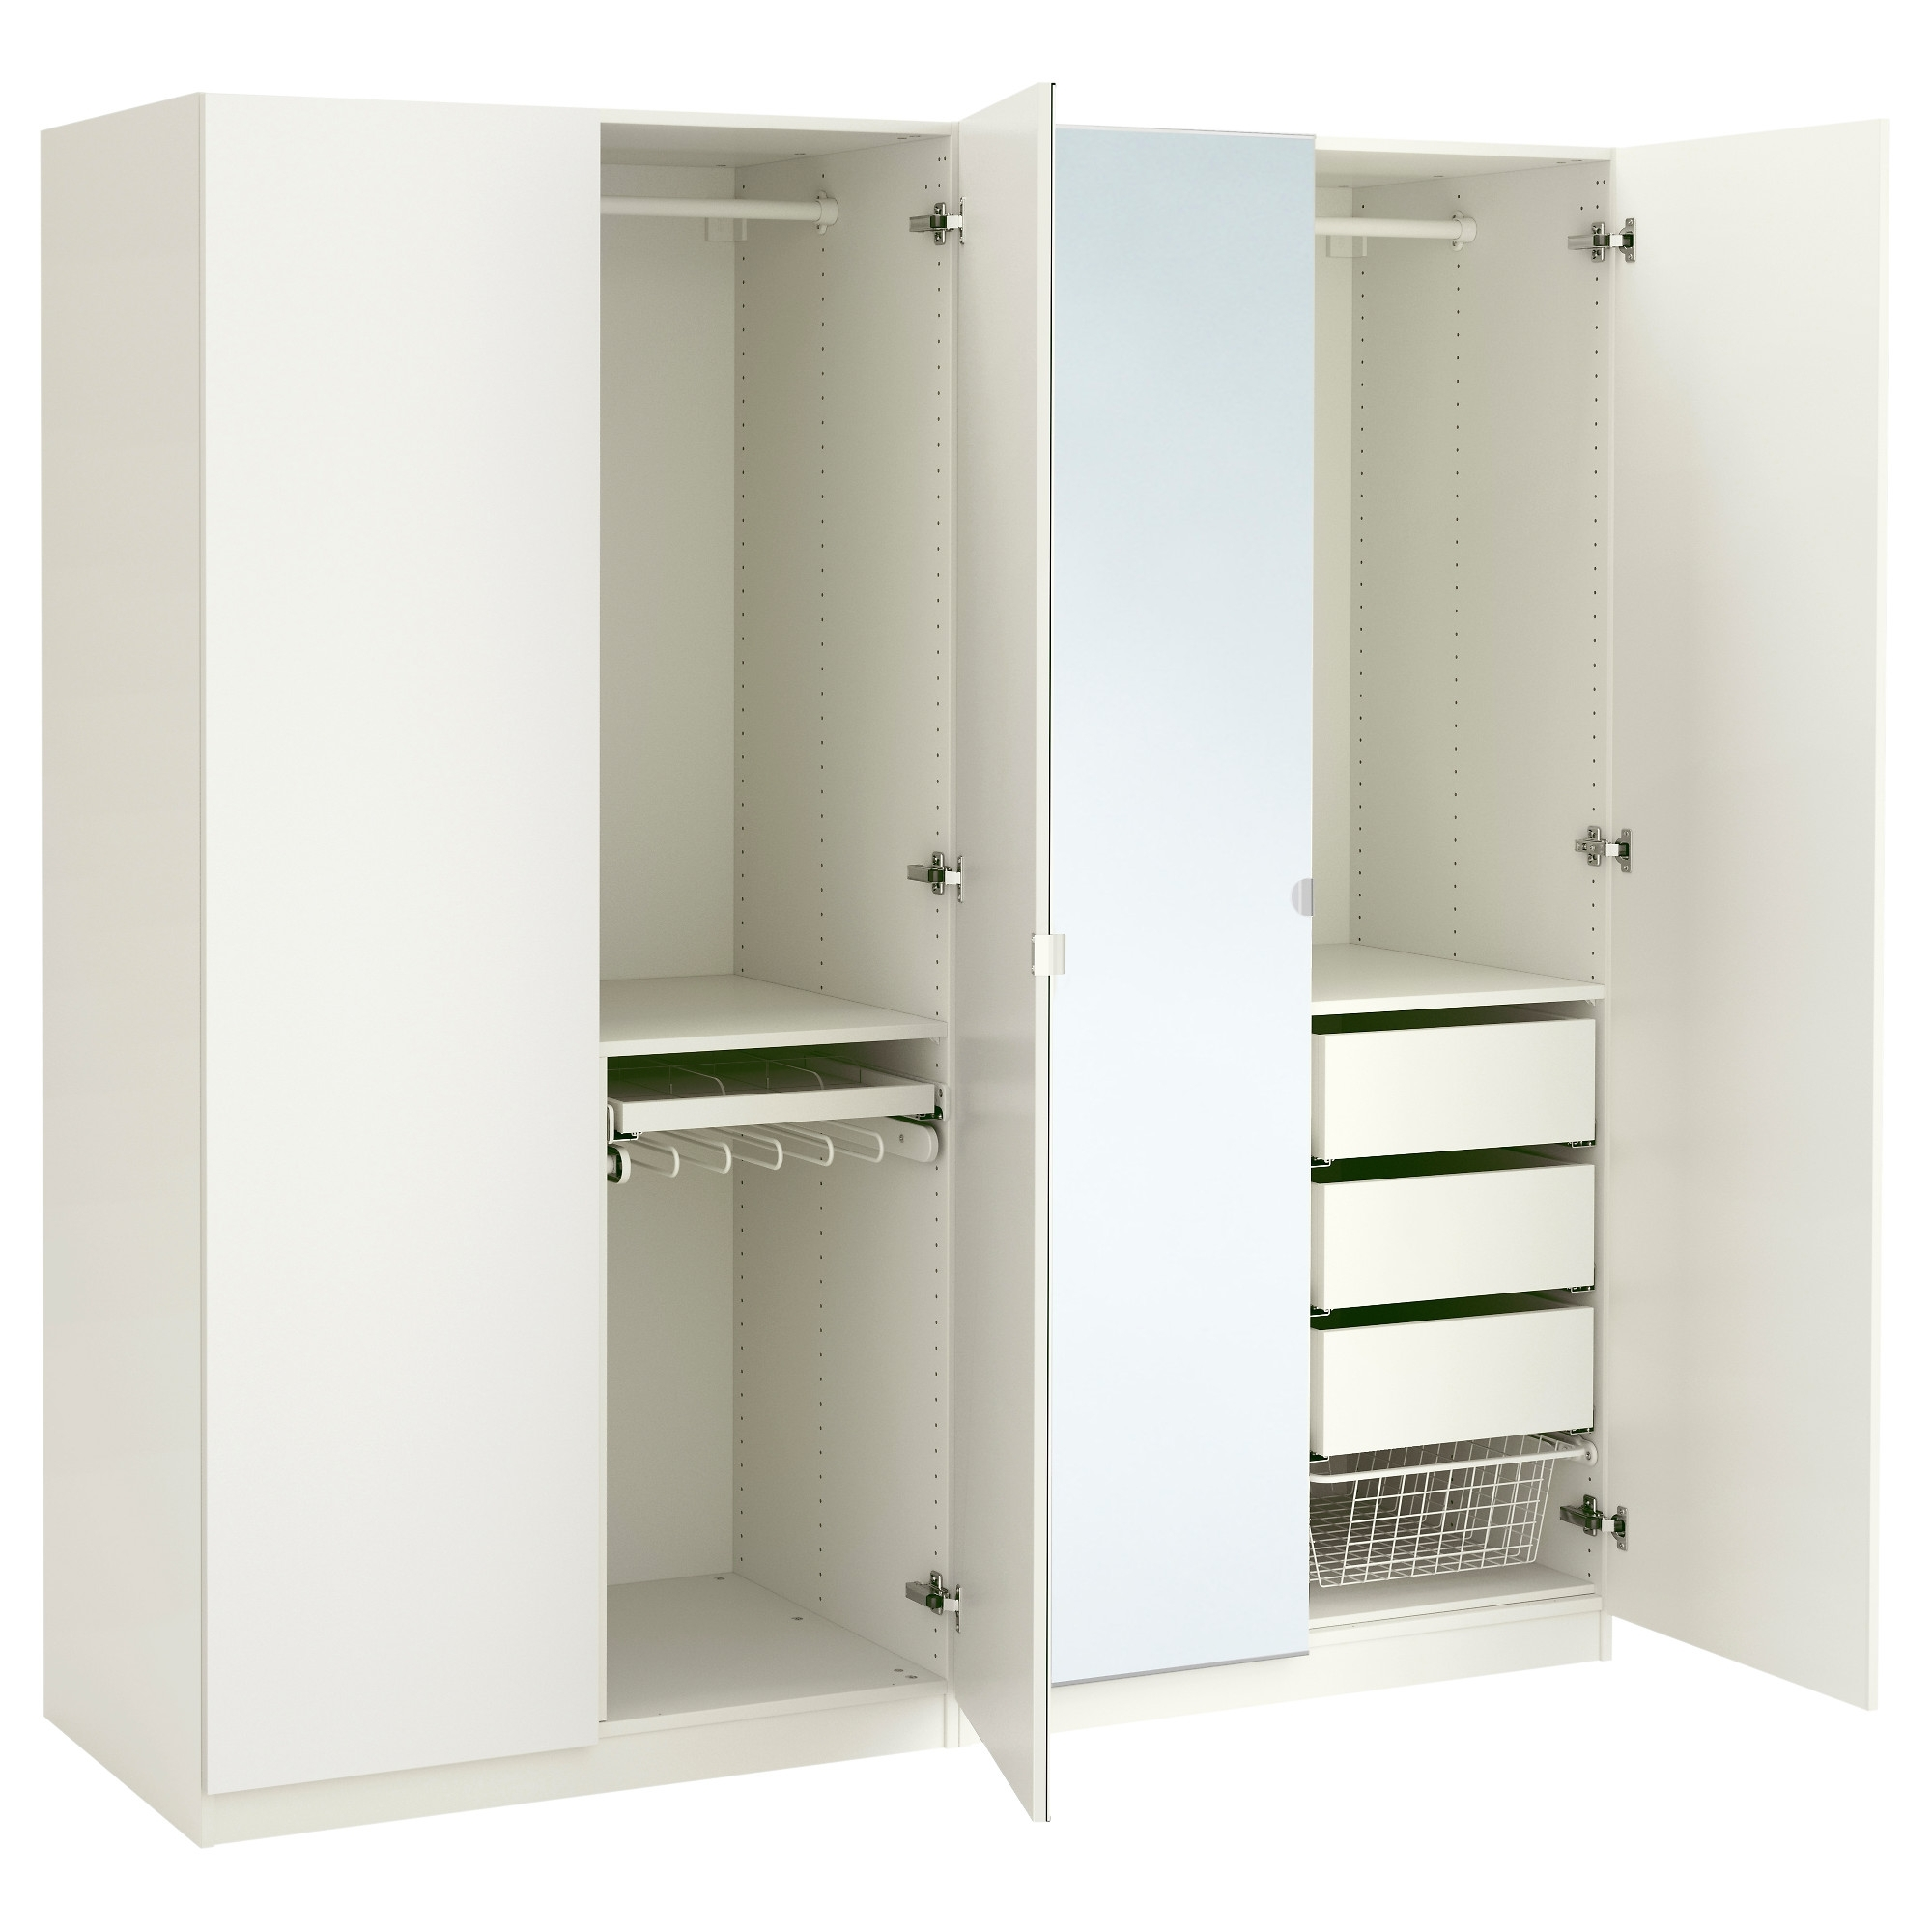 White Wardrobes With Drawers And Mirror With Regard To Most Popular White Wardrobe And Drawers With Mirror Triple Large This Will Be A (View 12 of 15)